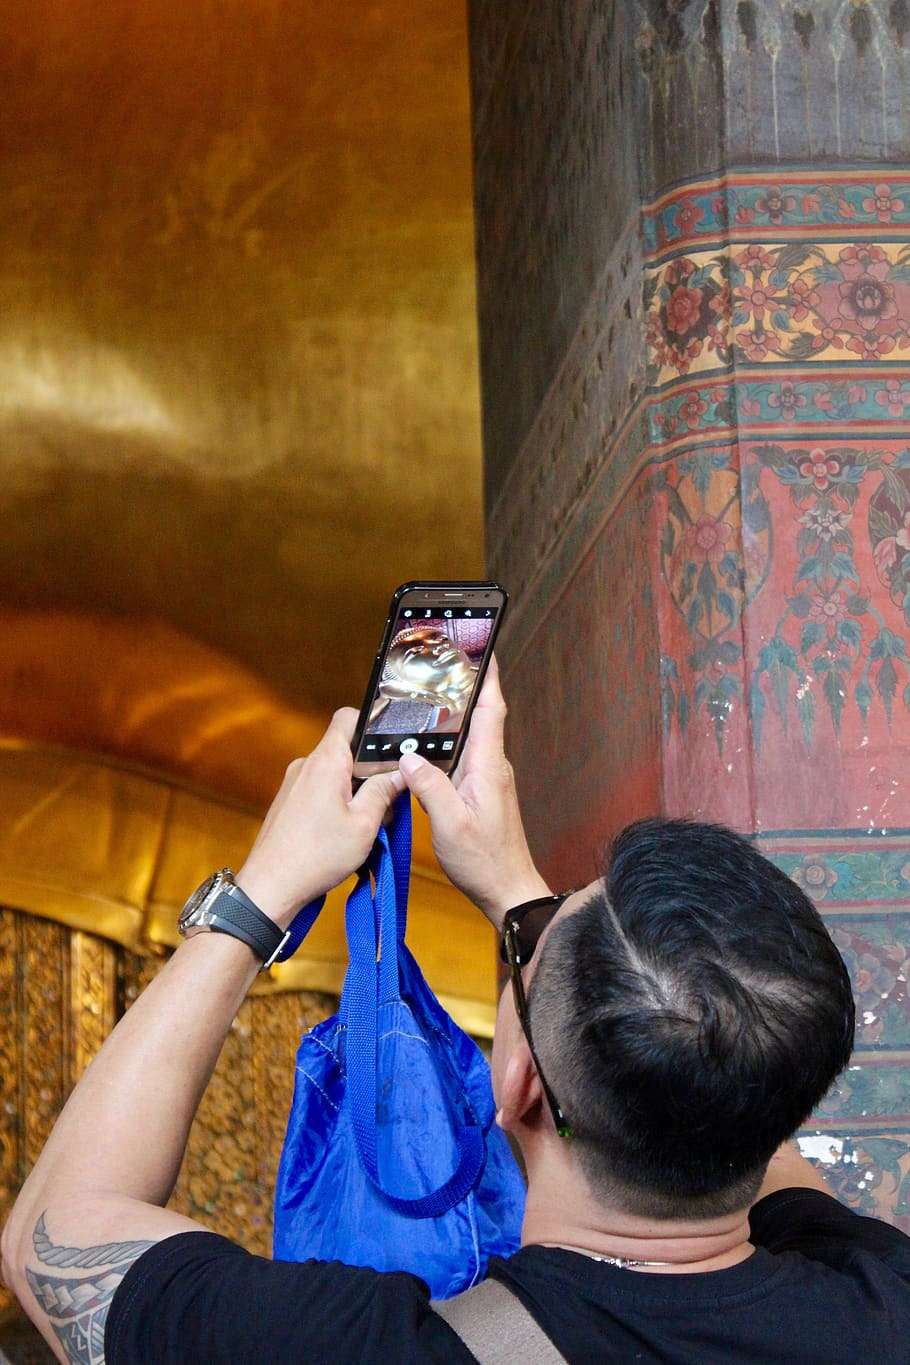 This is fine, take photos of the statues. This is the beautiful Wat Pho in Bangkok.